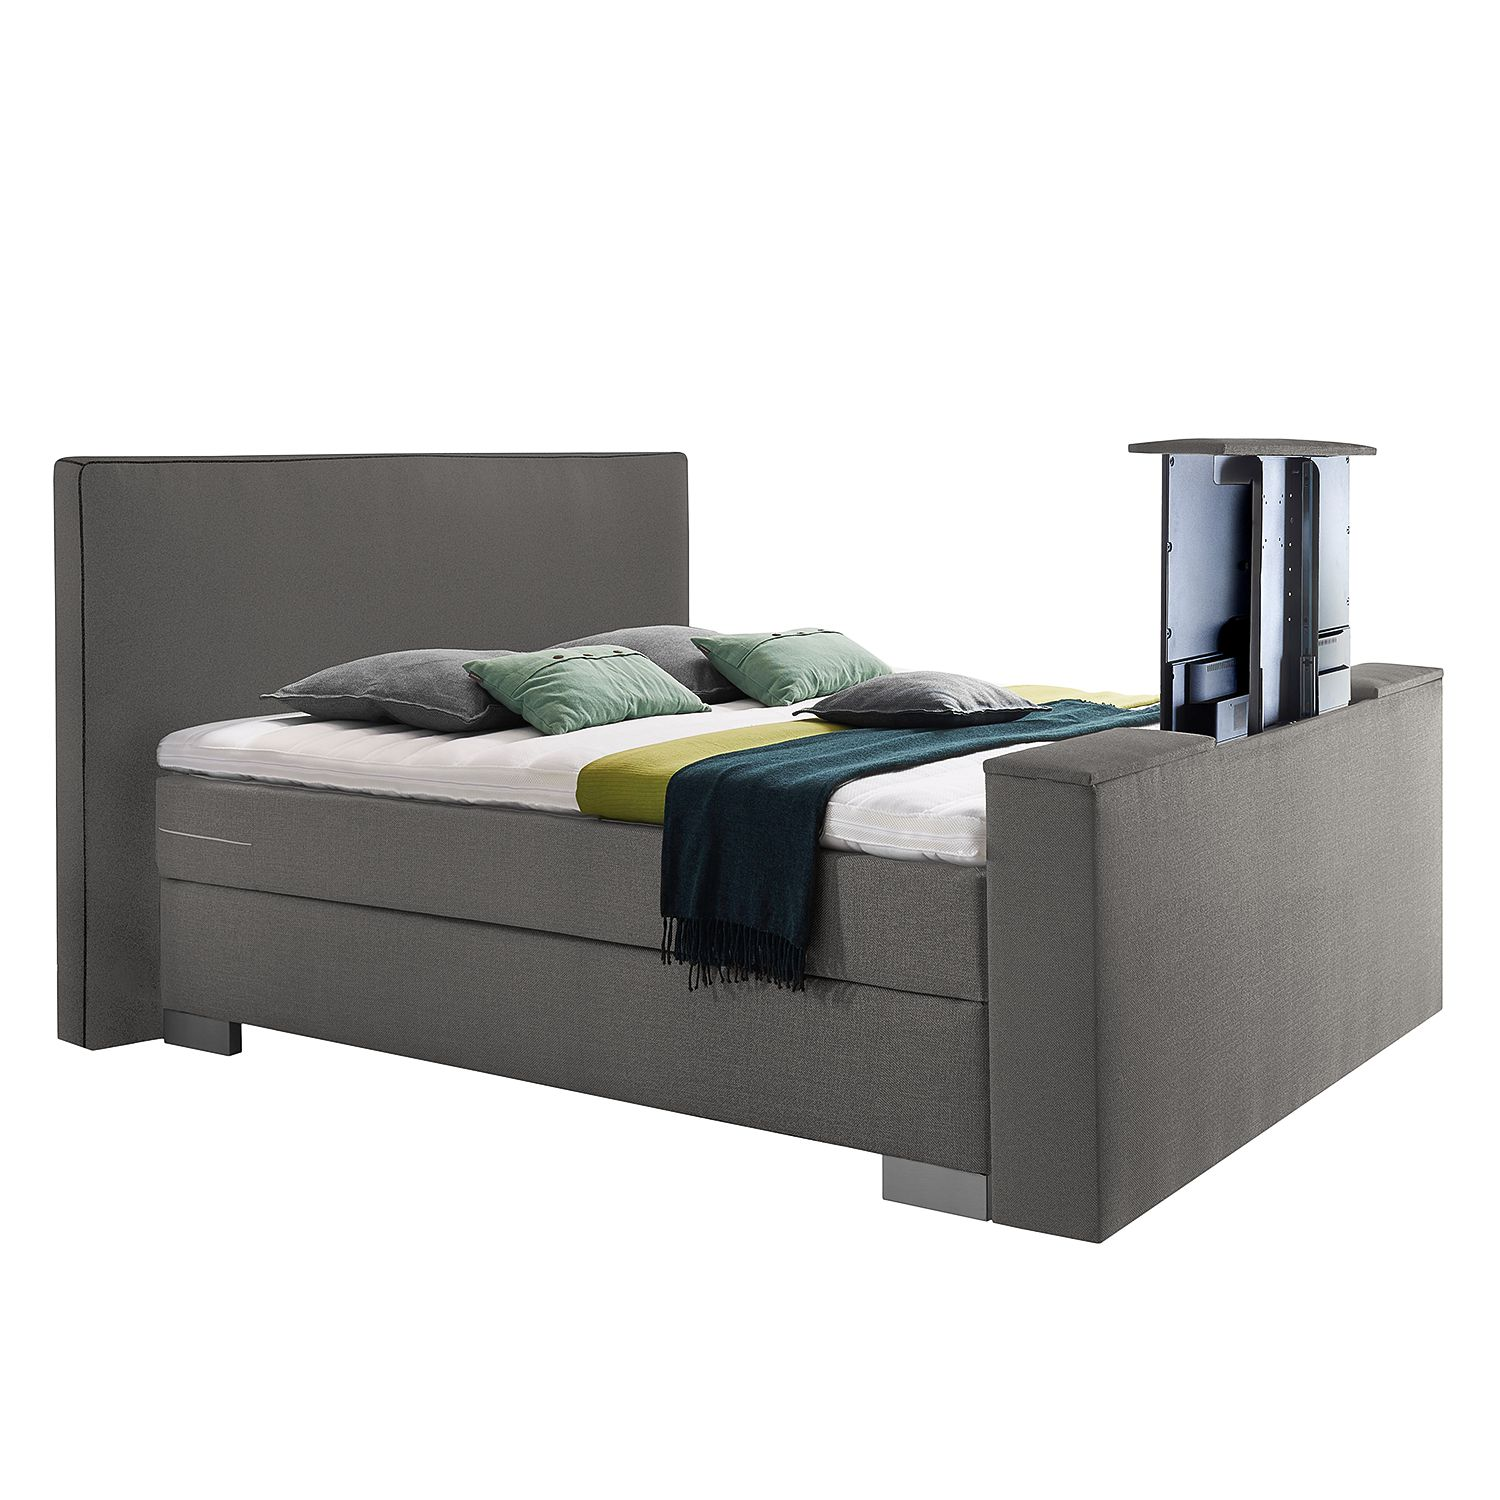 Boxspring Emperial Night III - 160 x 200cm - H3 vanaf 80kg - Ton pocketvering - Solino grijs, Grand Selection